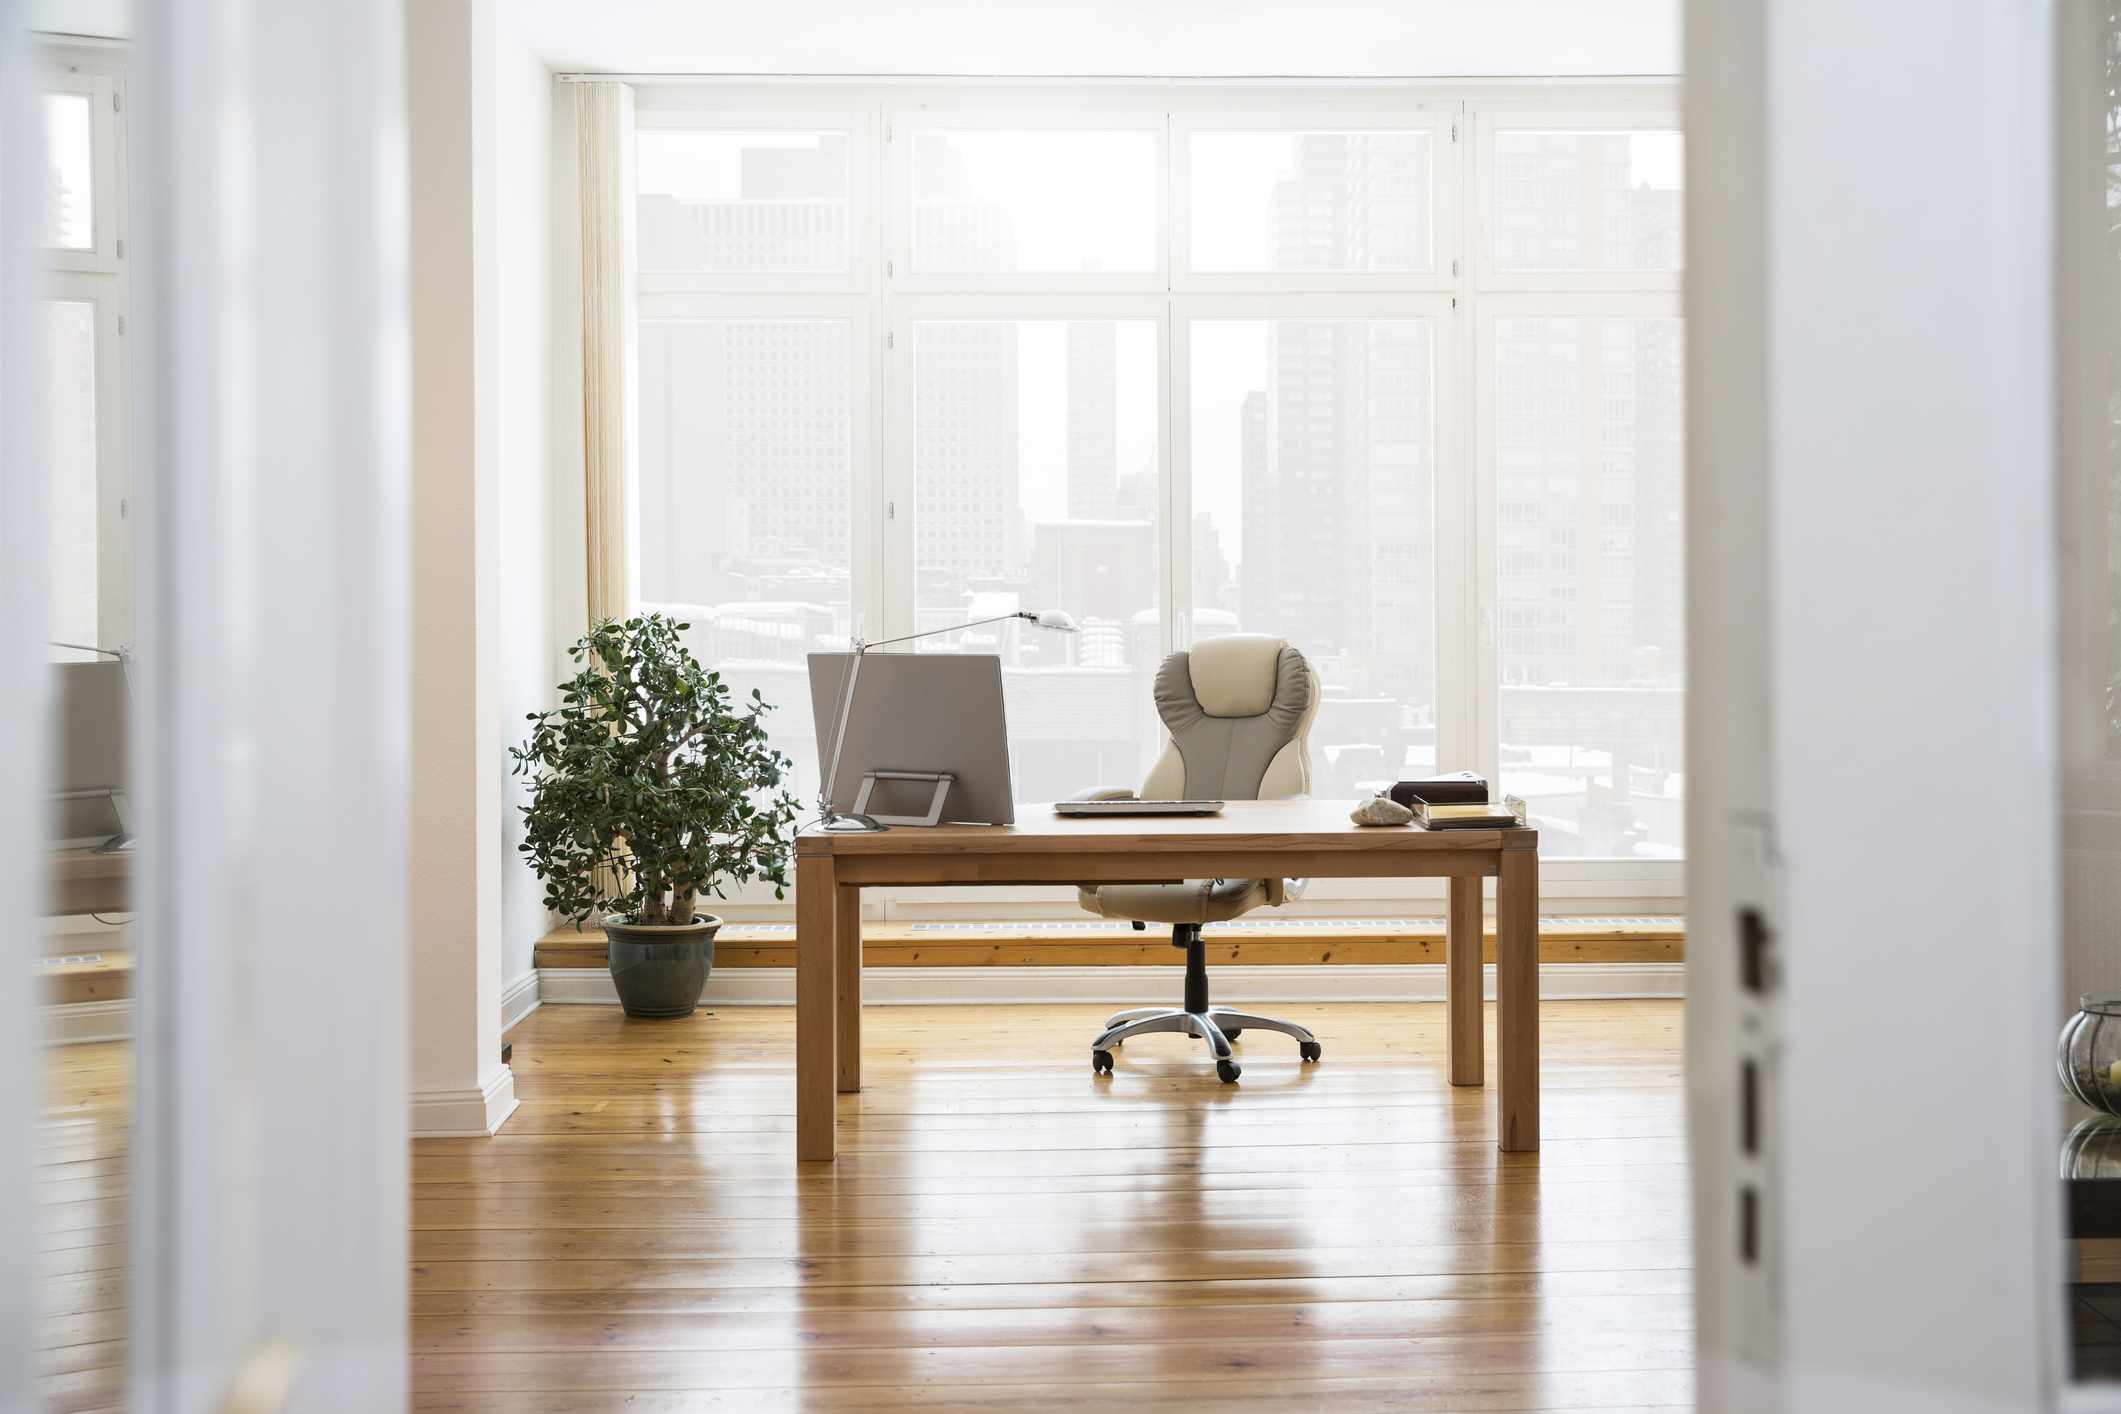 Spacious office with wood desk and plant